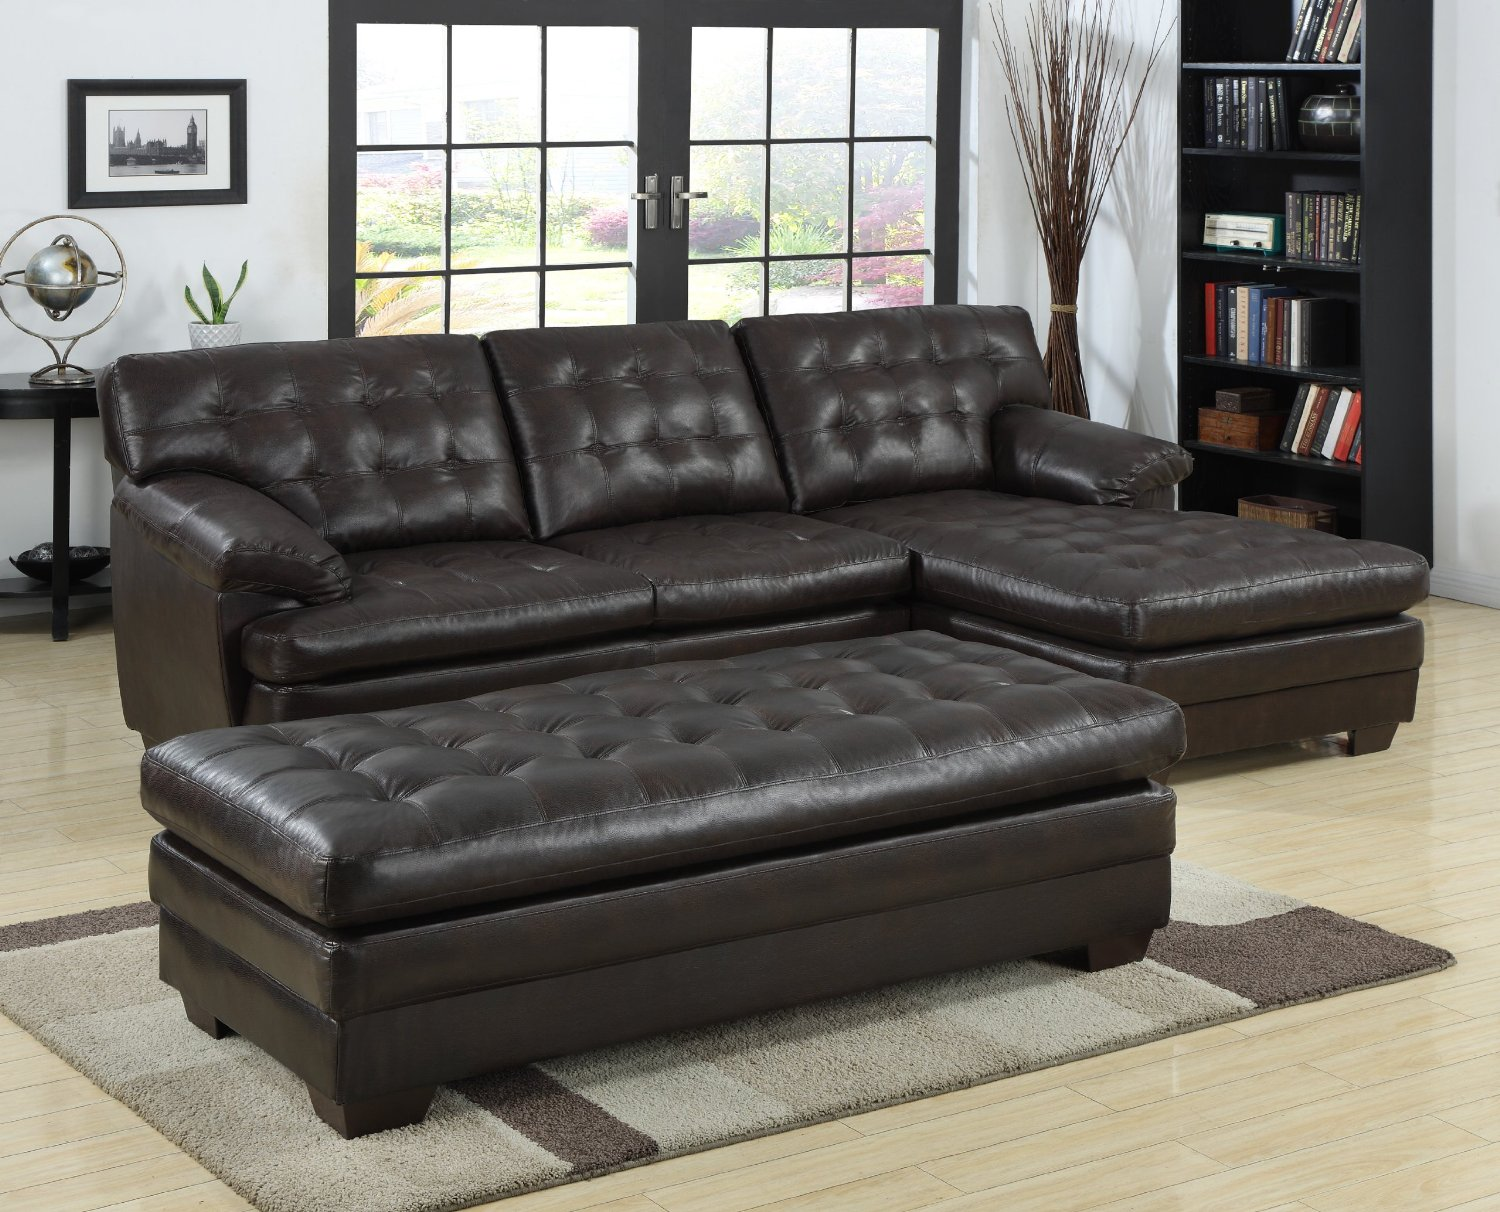 Image of: sectional sofa with chaise ounge brown leather